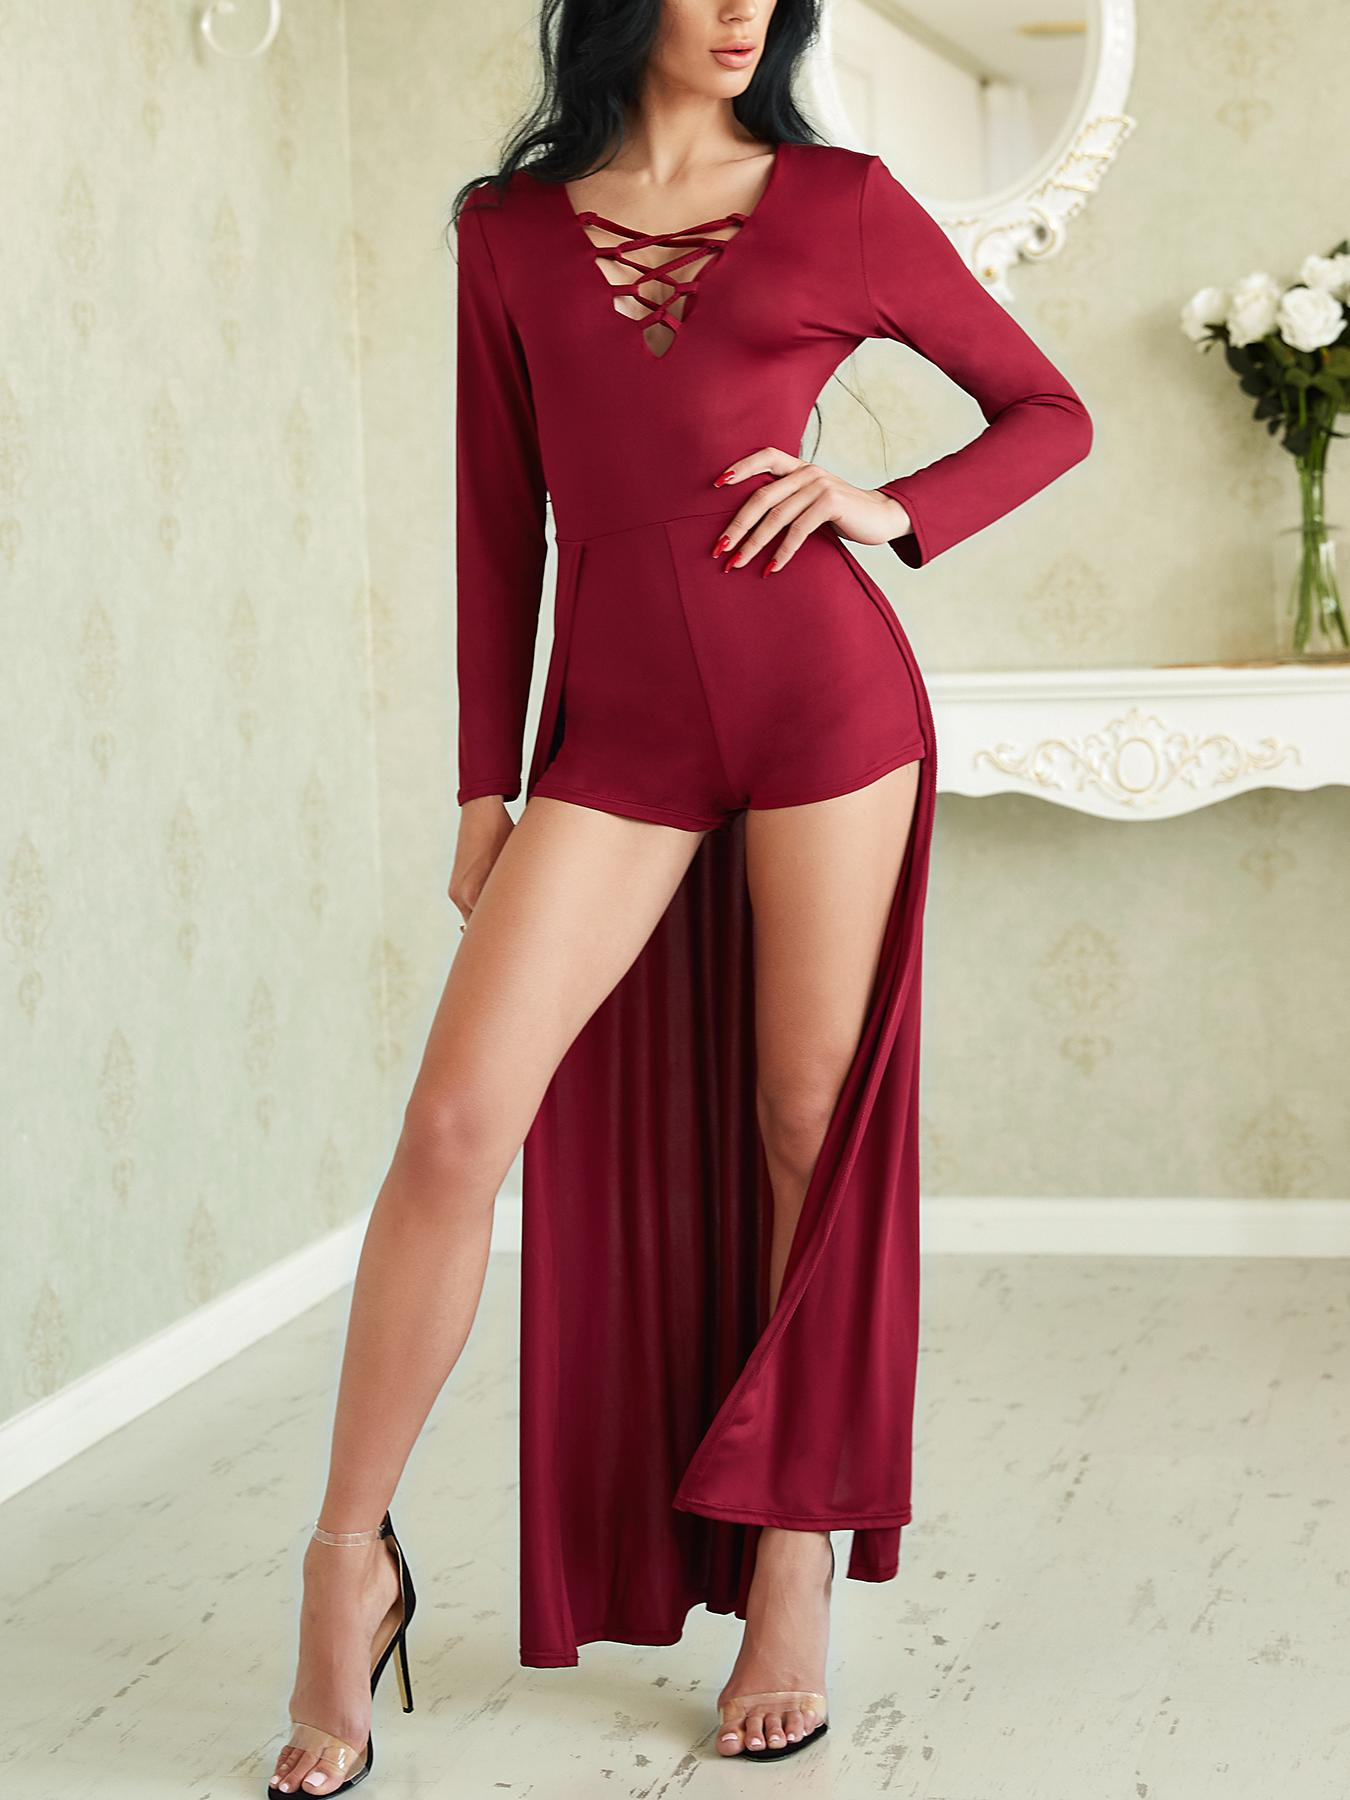 e5b66b639840f Sexy Lace-up Patchwork Maxi Romper Dress Online. Discover hottest trend  fashion at chicme.com